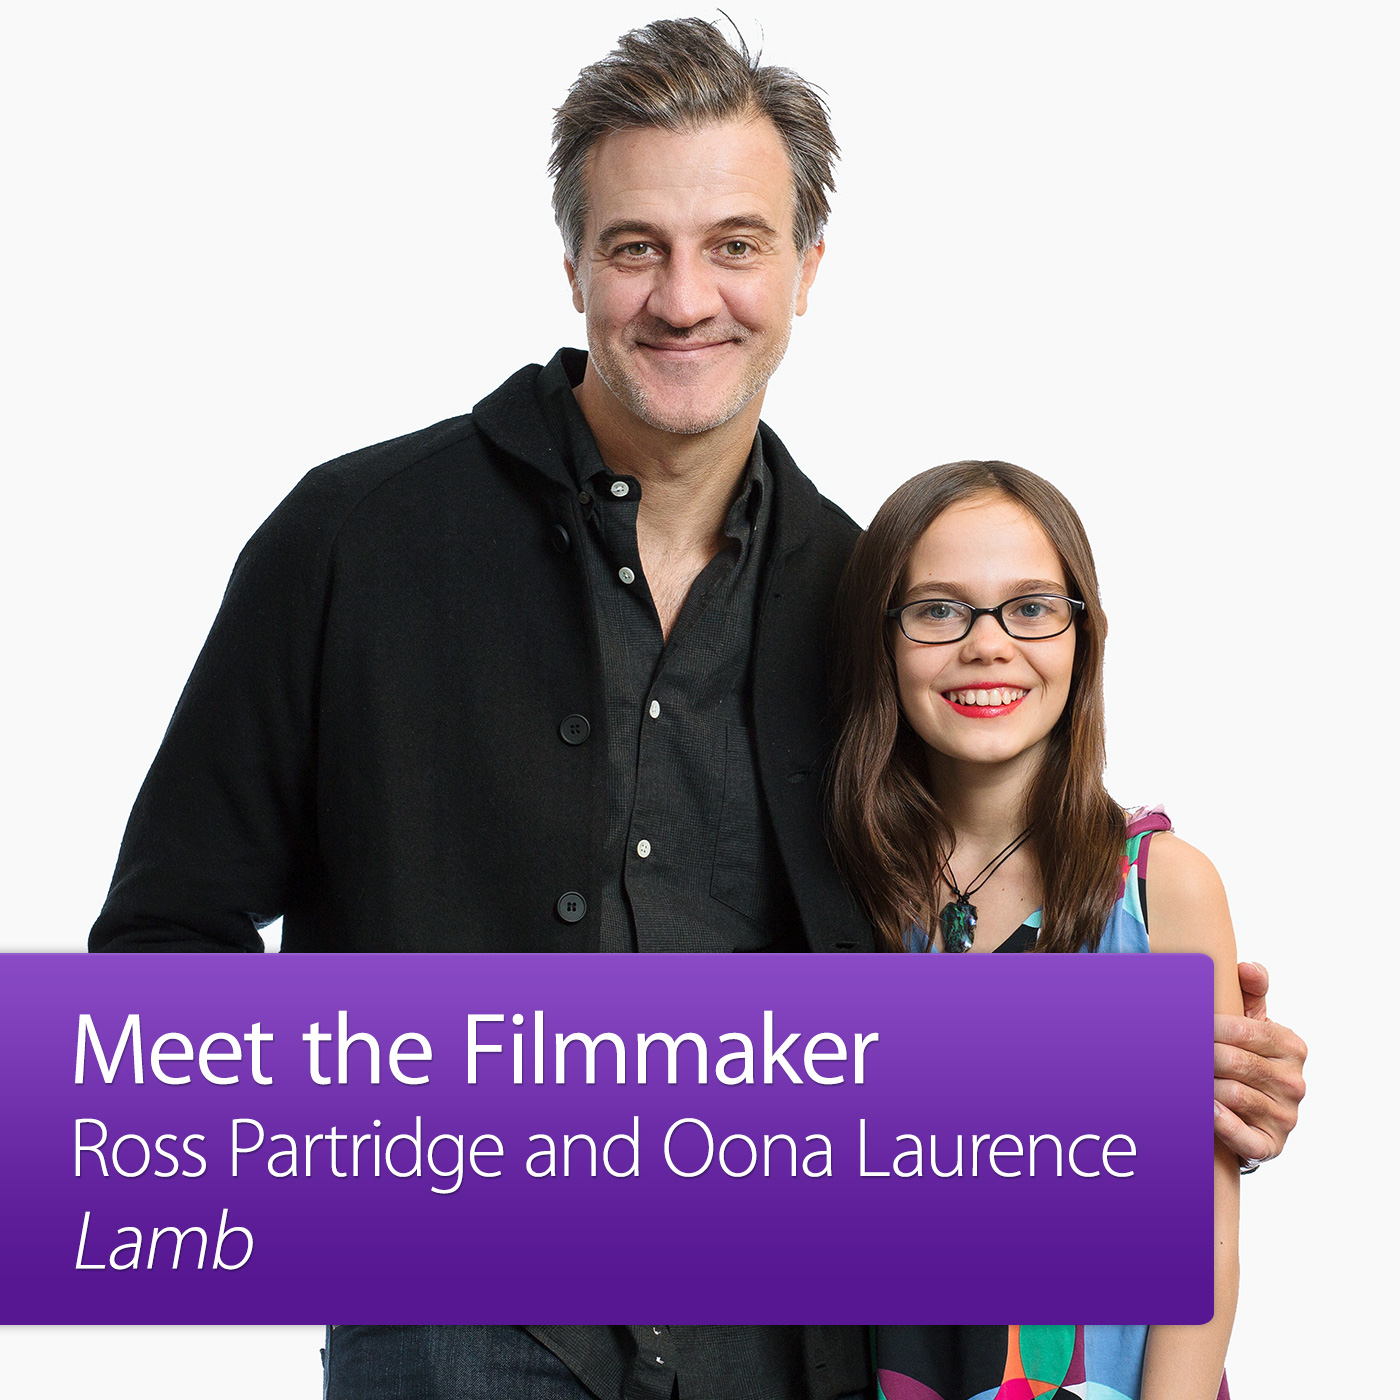 Lamb: Meet the Filmmaker